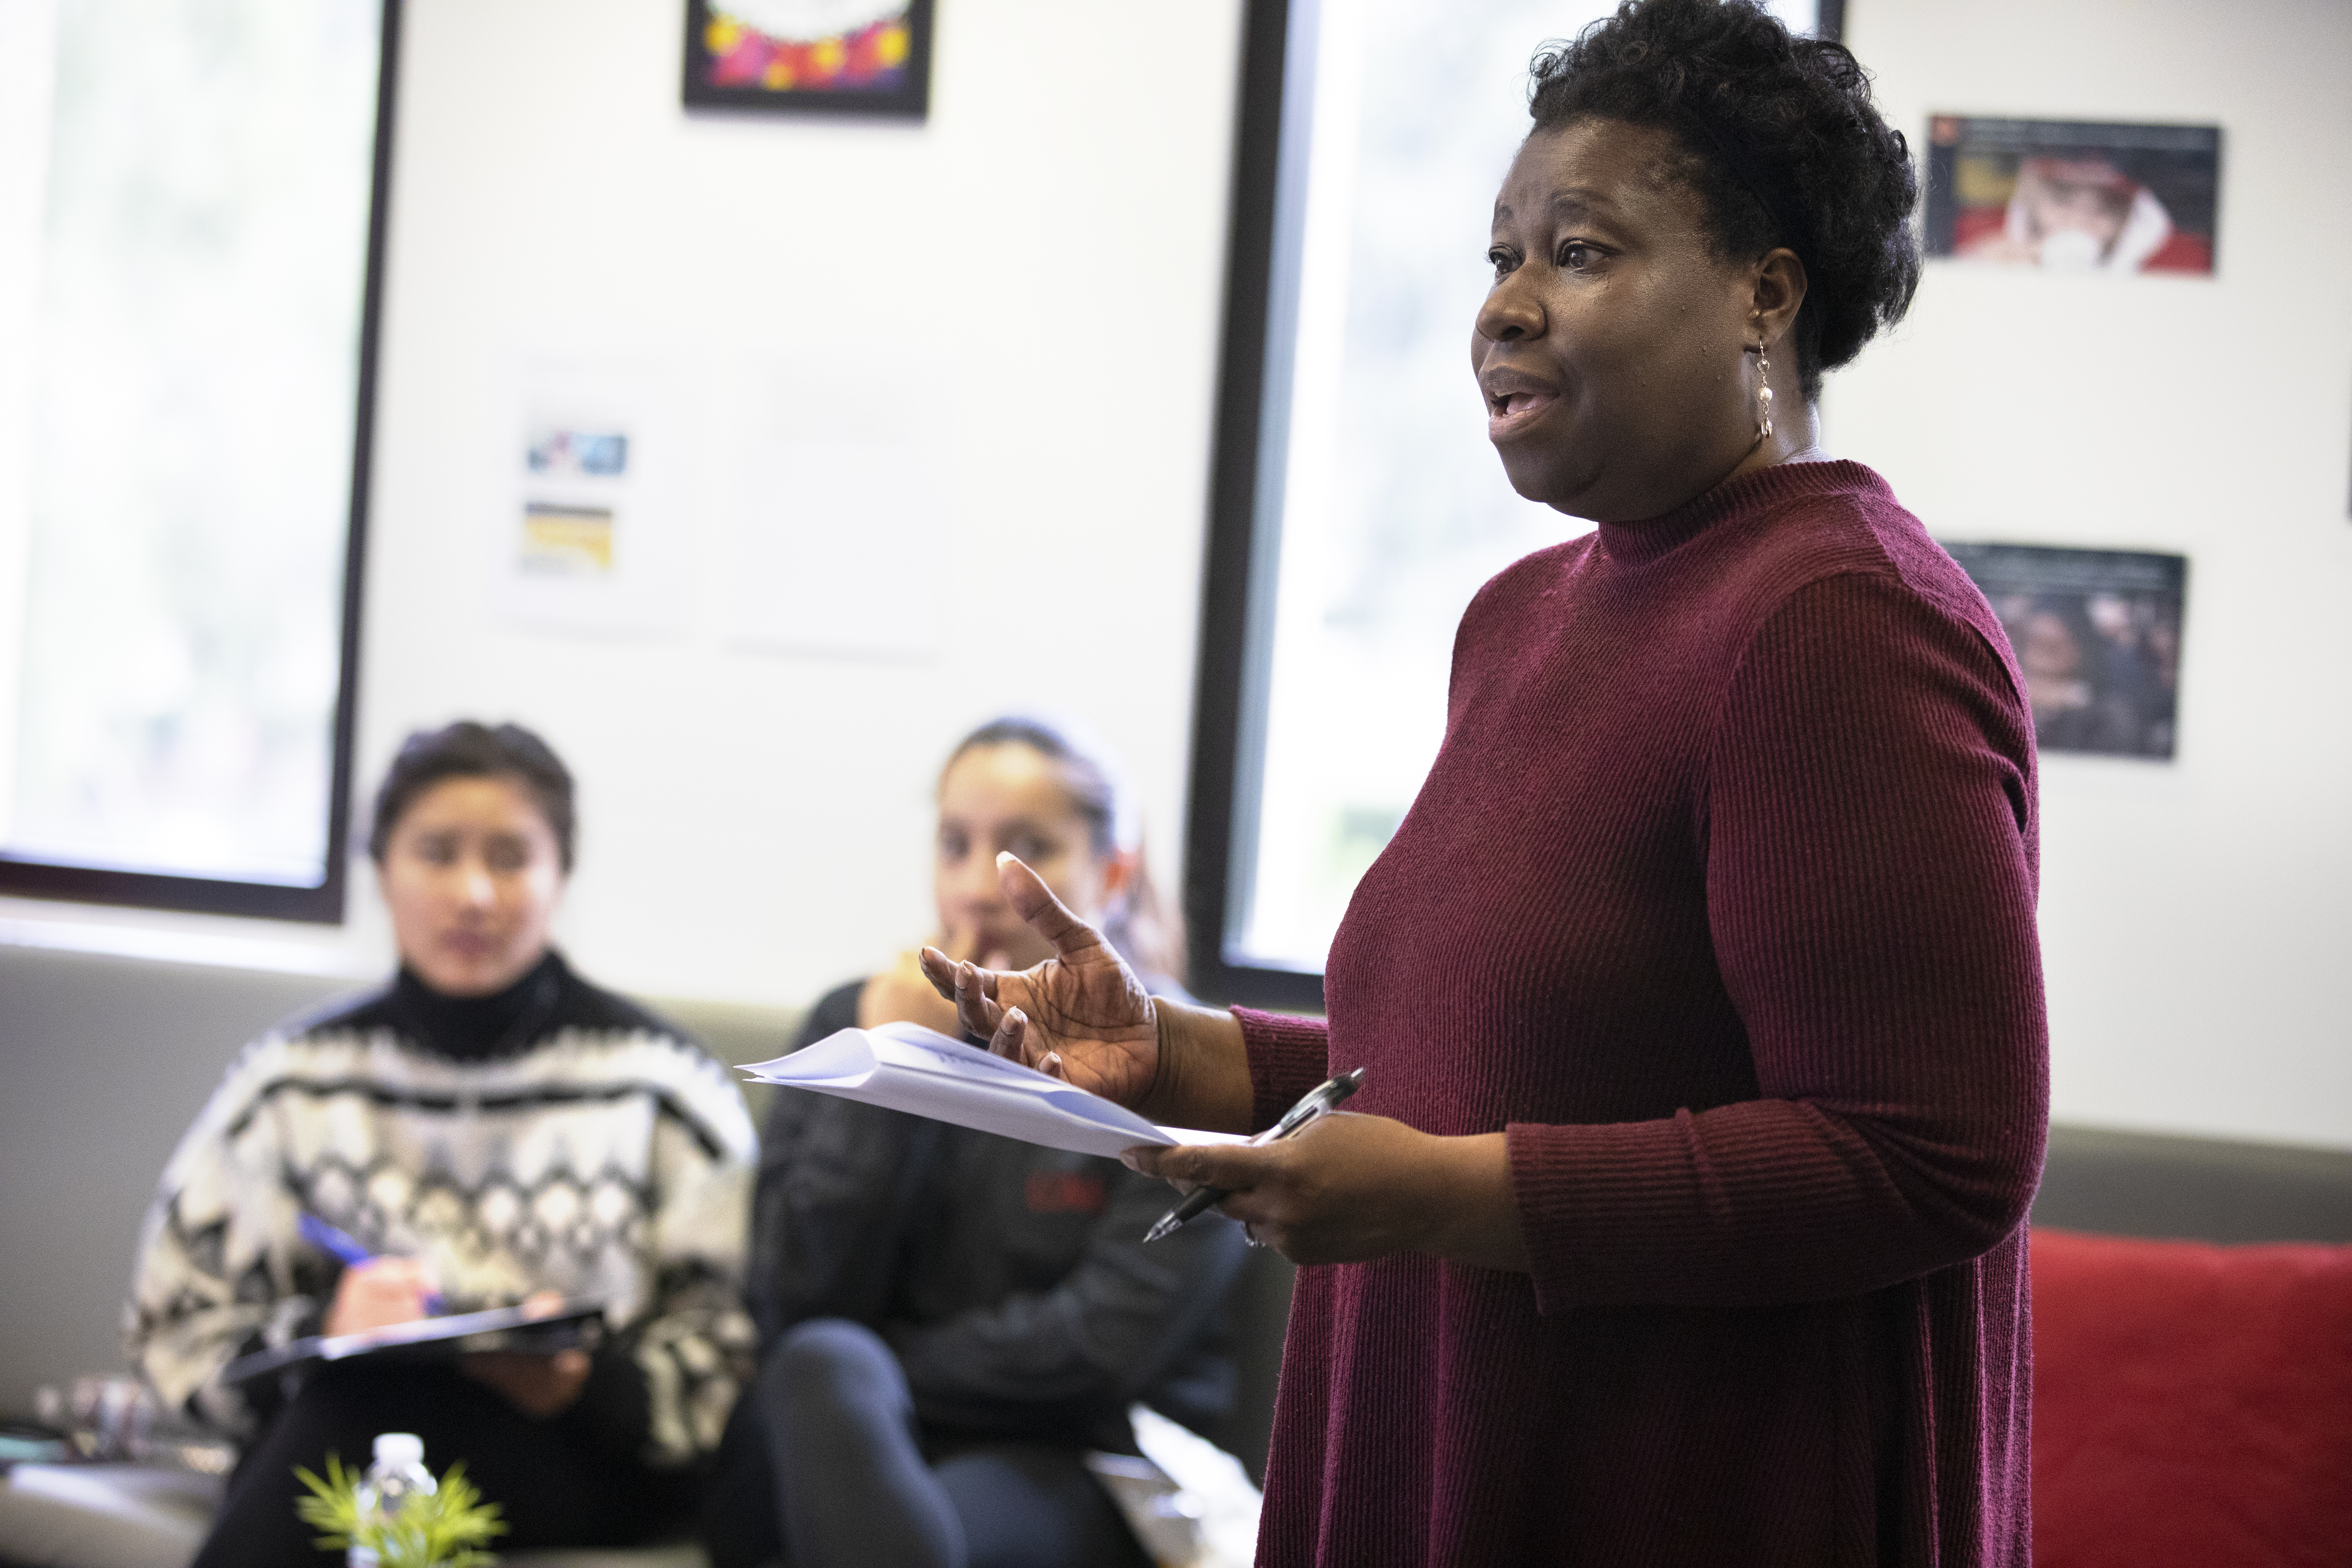 Nyree Gray offers personal and societal solutions to confronting racism